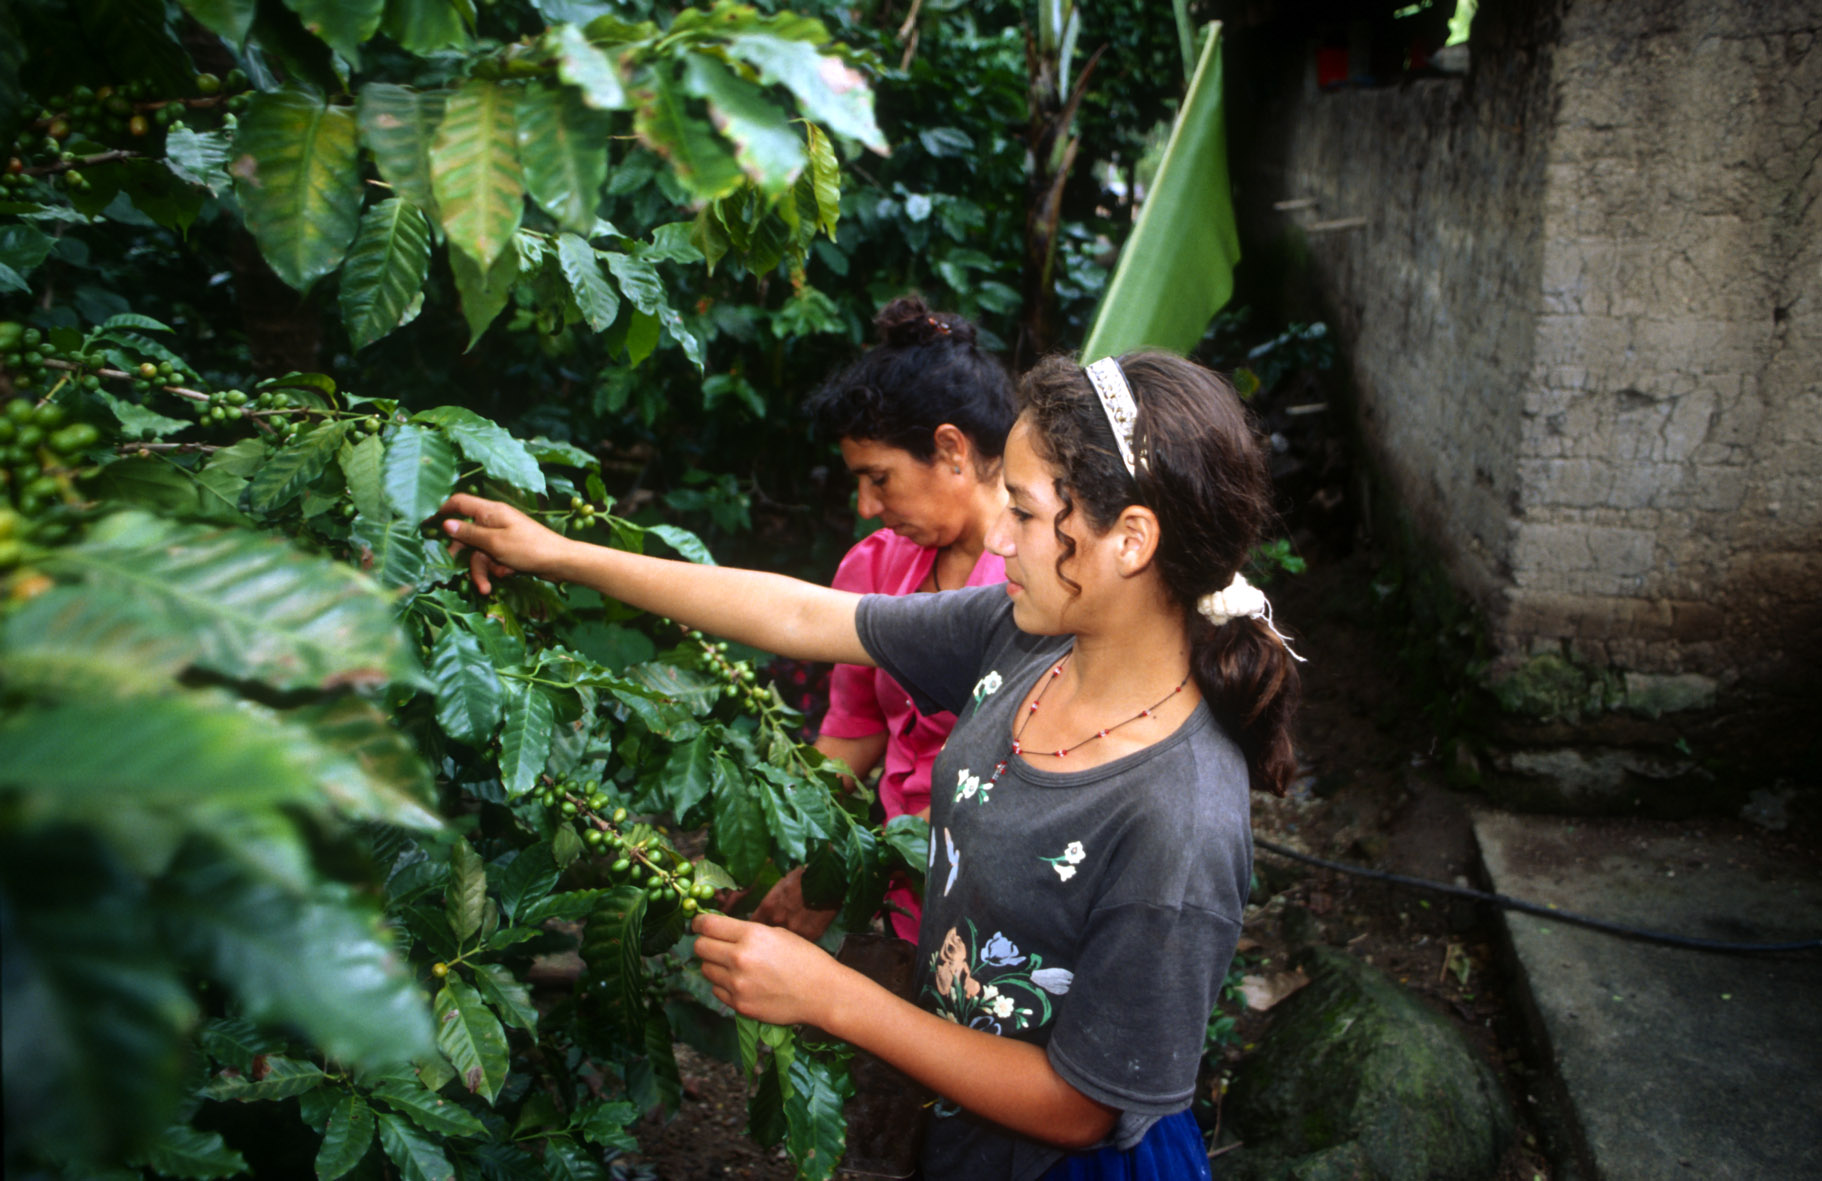 Campioning Sustainable Agriculture in the Caribbean region of Colombia